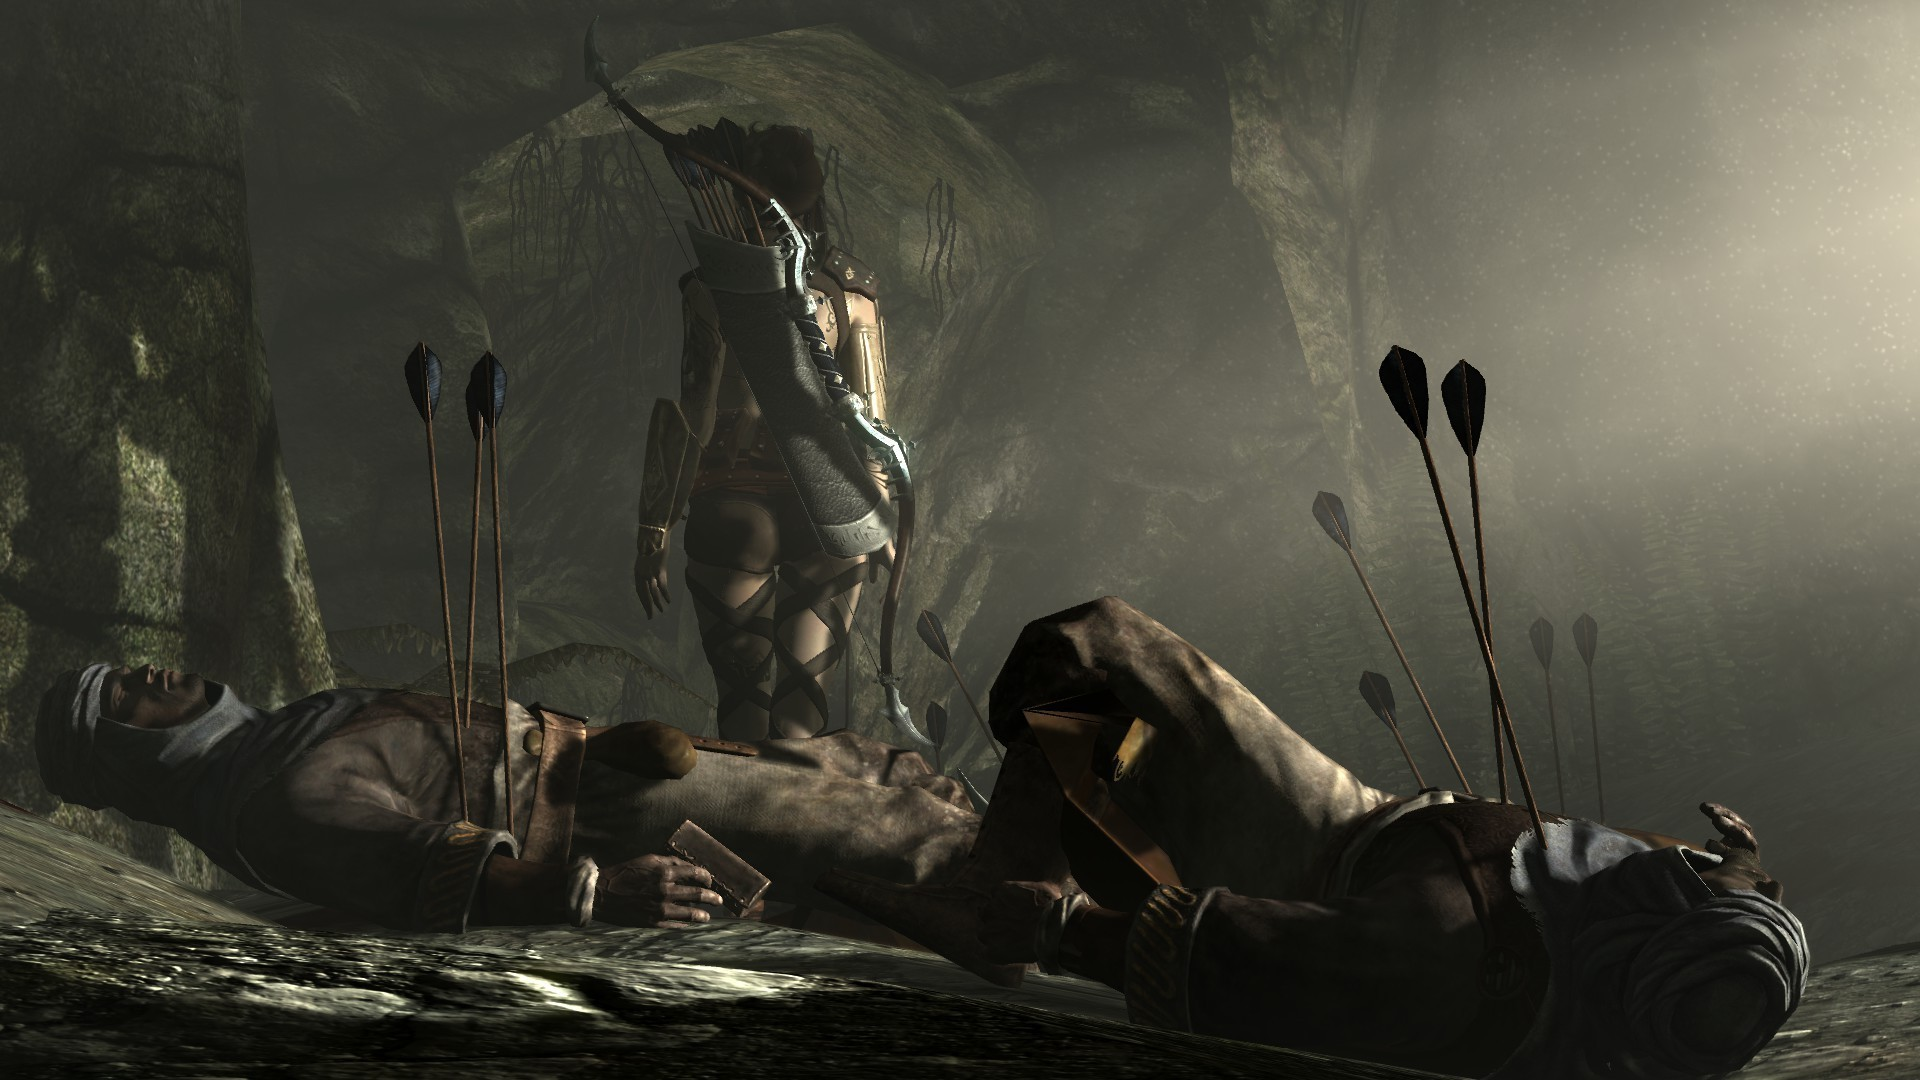 The Elder Scrolls Wallpaper: Skyrim Wallpaper 1366x768 (74+ Images